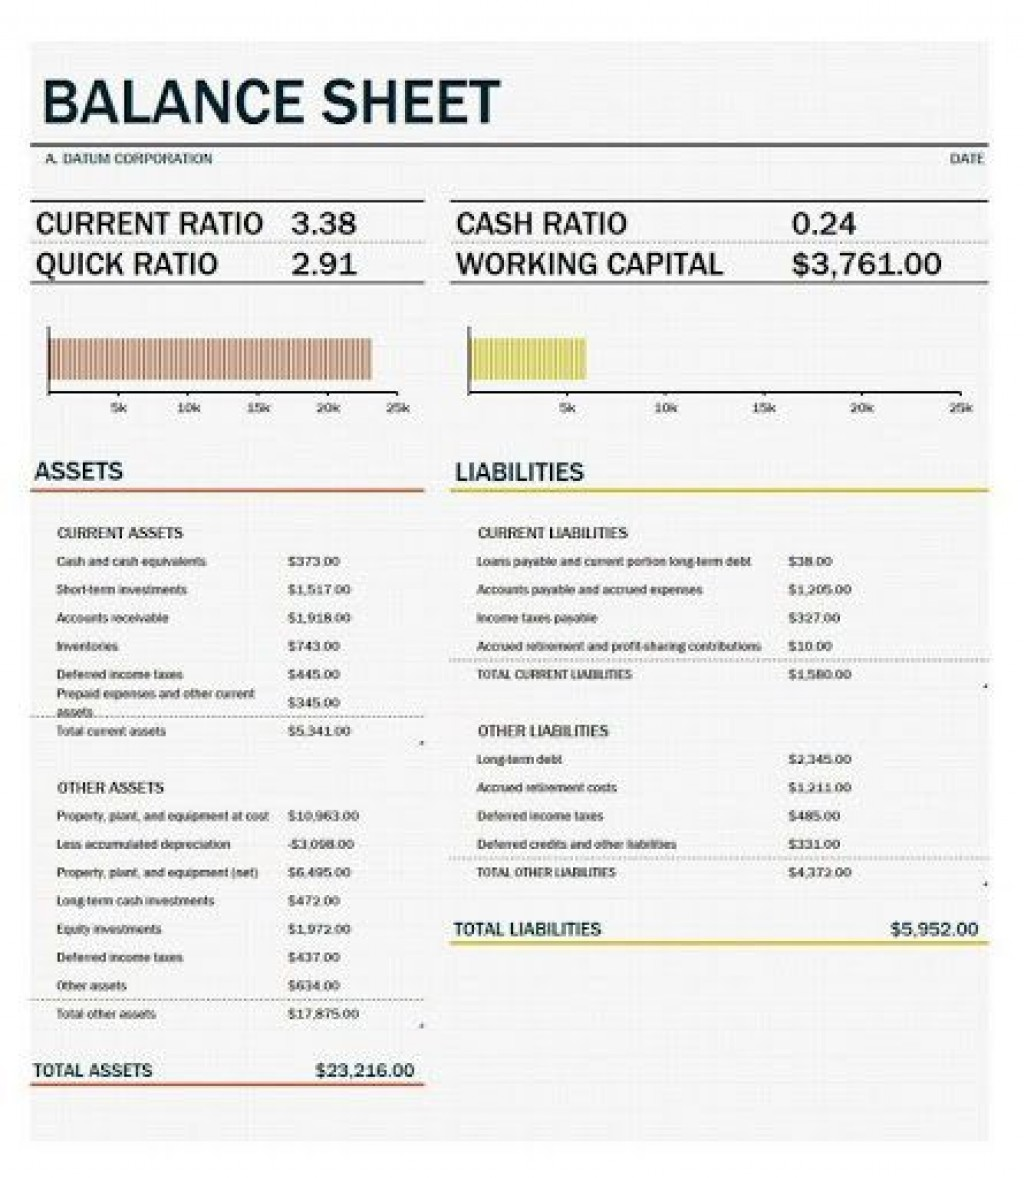 002 Unforgettable Simple Balance Sheet Template Photo  Example For Small Busines Sample A ChurchLarge